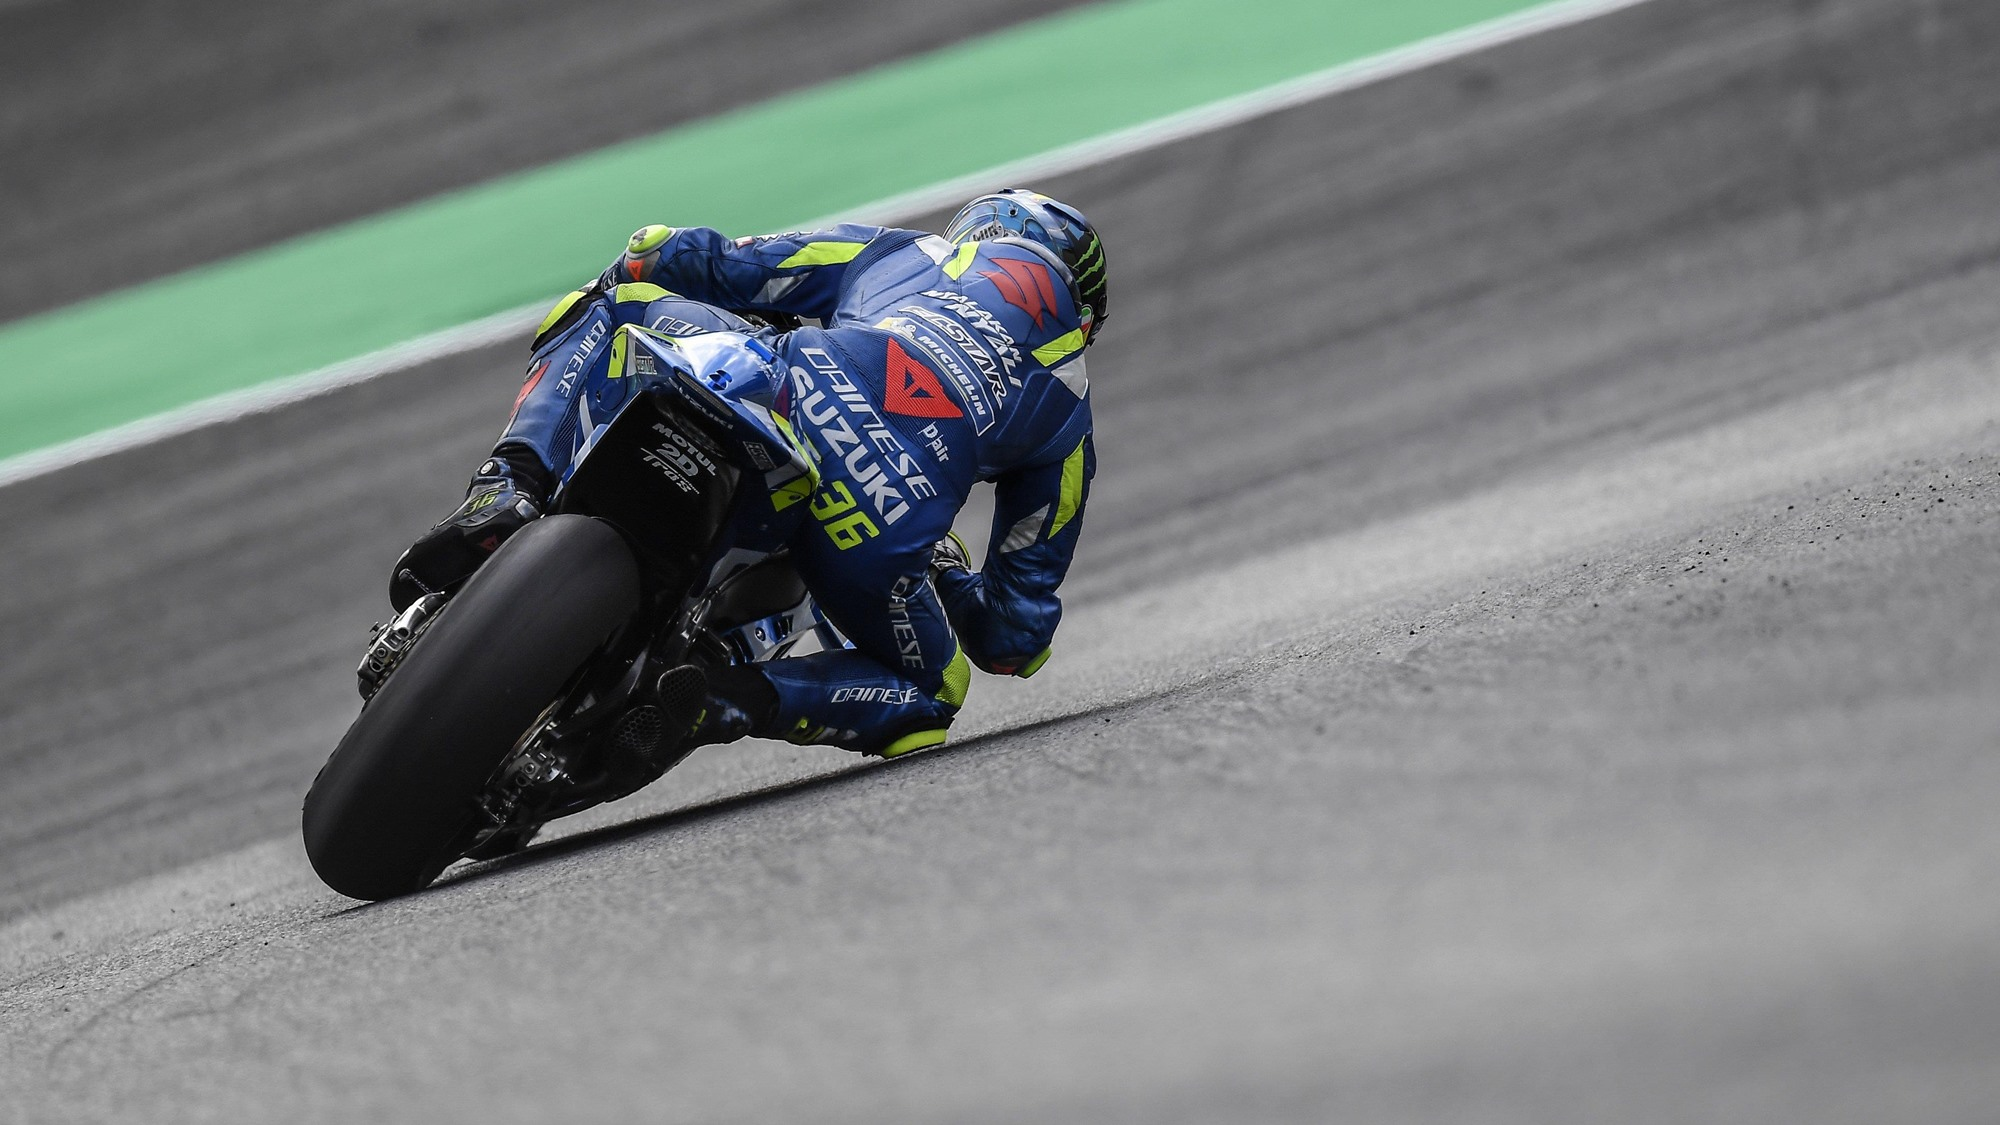 Alex Rins - HD wallpapers from MotoGP Motegi 2019